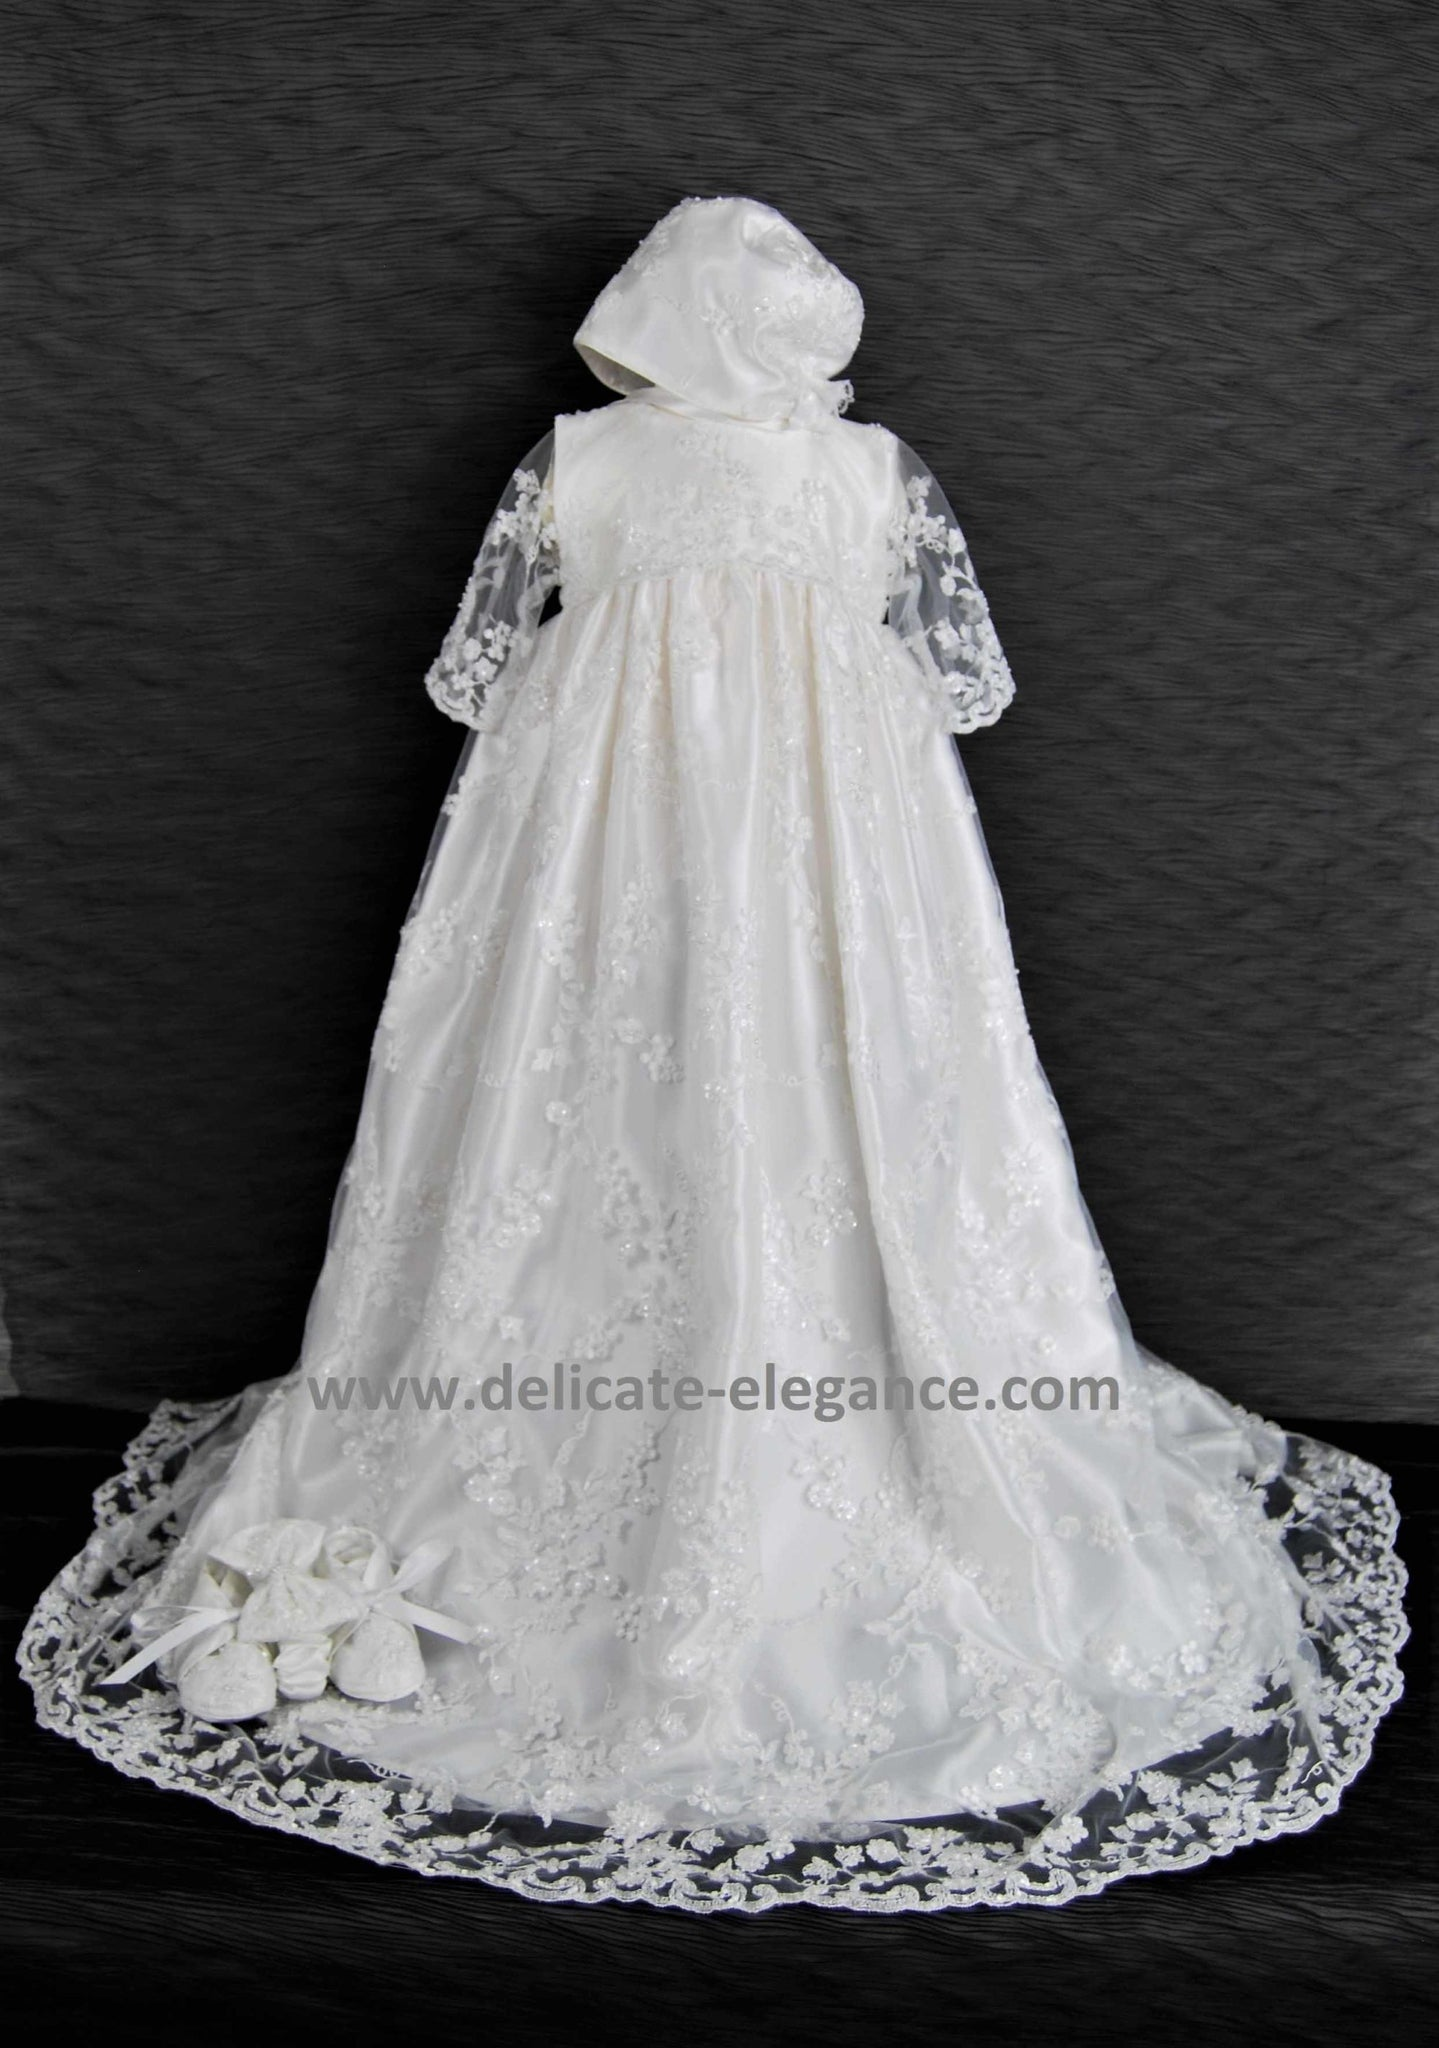 4348 (White Lace): Girls' Satin Christening Gown - size 0